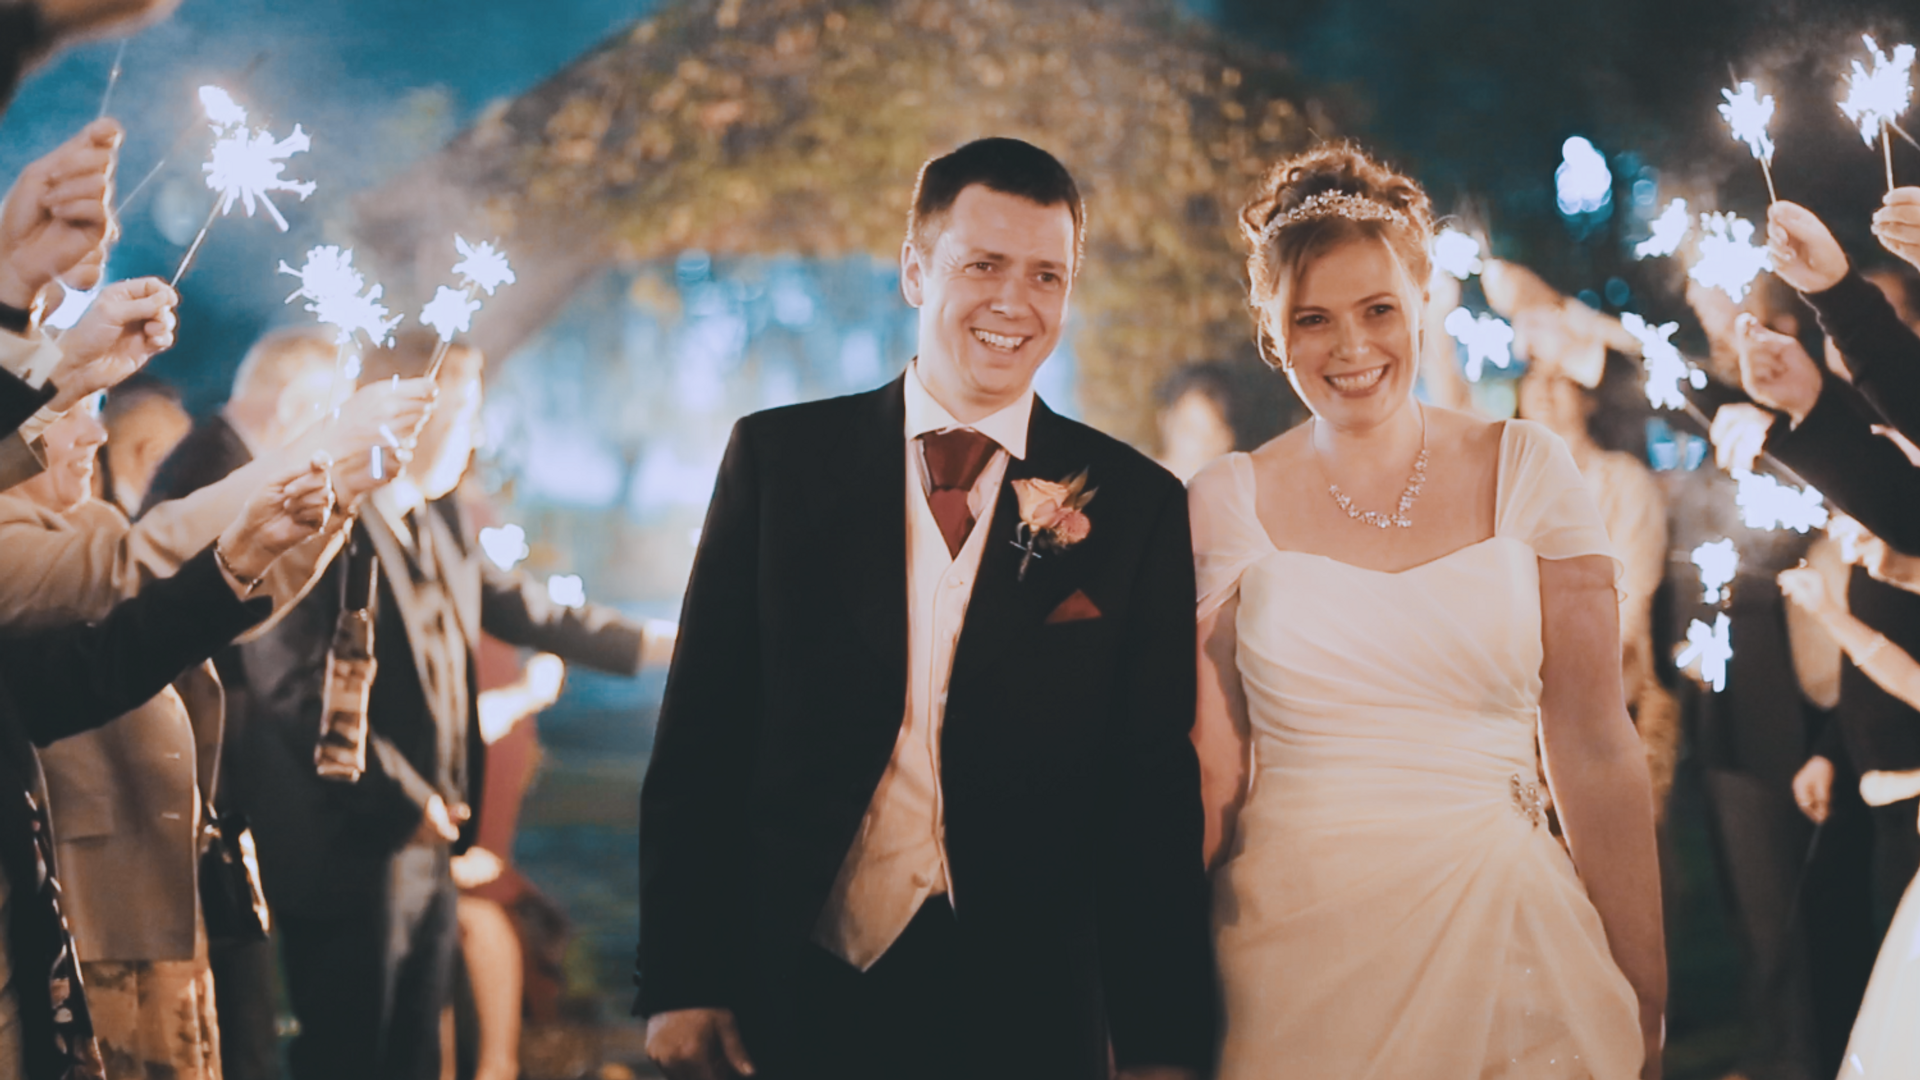 SARAH AND GUIDO - AUTUMN WEDDING